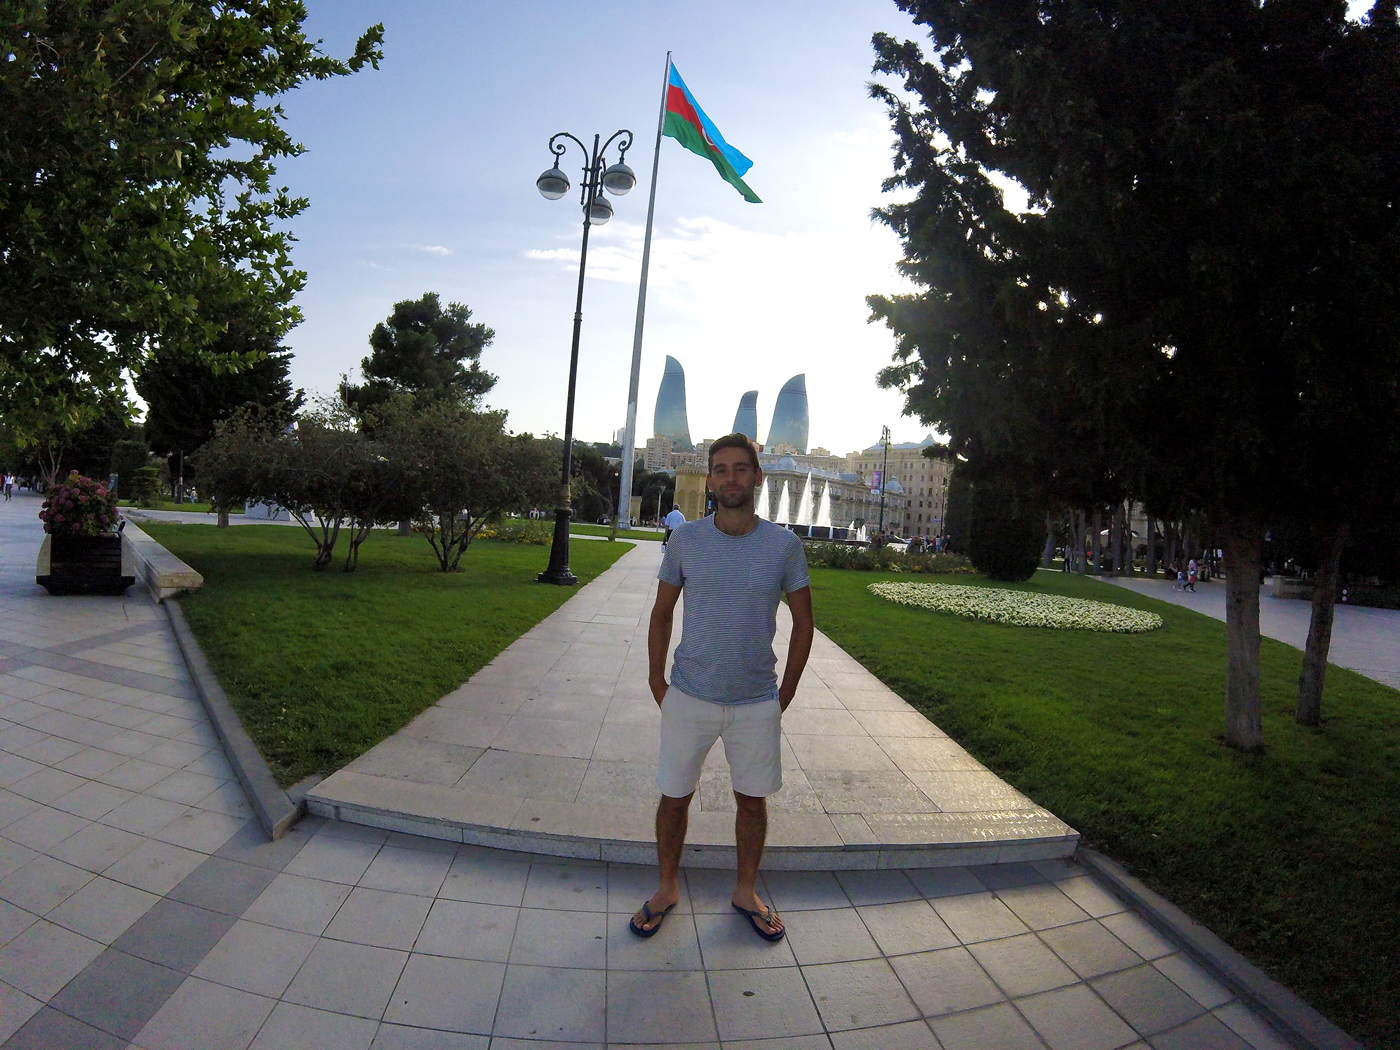 Cycling, Azerbaijan Cycling, crossing the Caucasus region by bicycle, Arthur in Baku. Cycling travel, biketouring, cycling Caucasus, cycling Azerbaijan, Arthur in Baku.